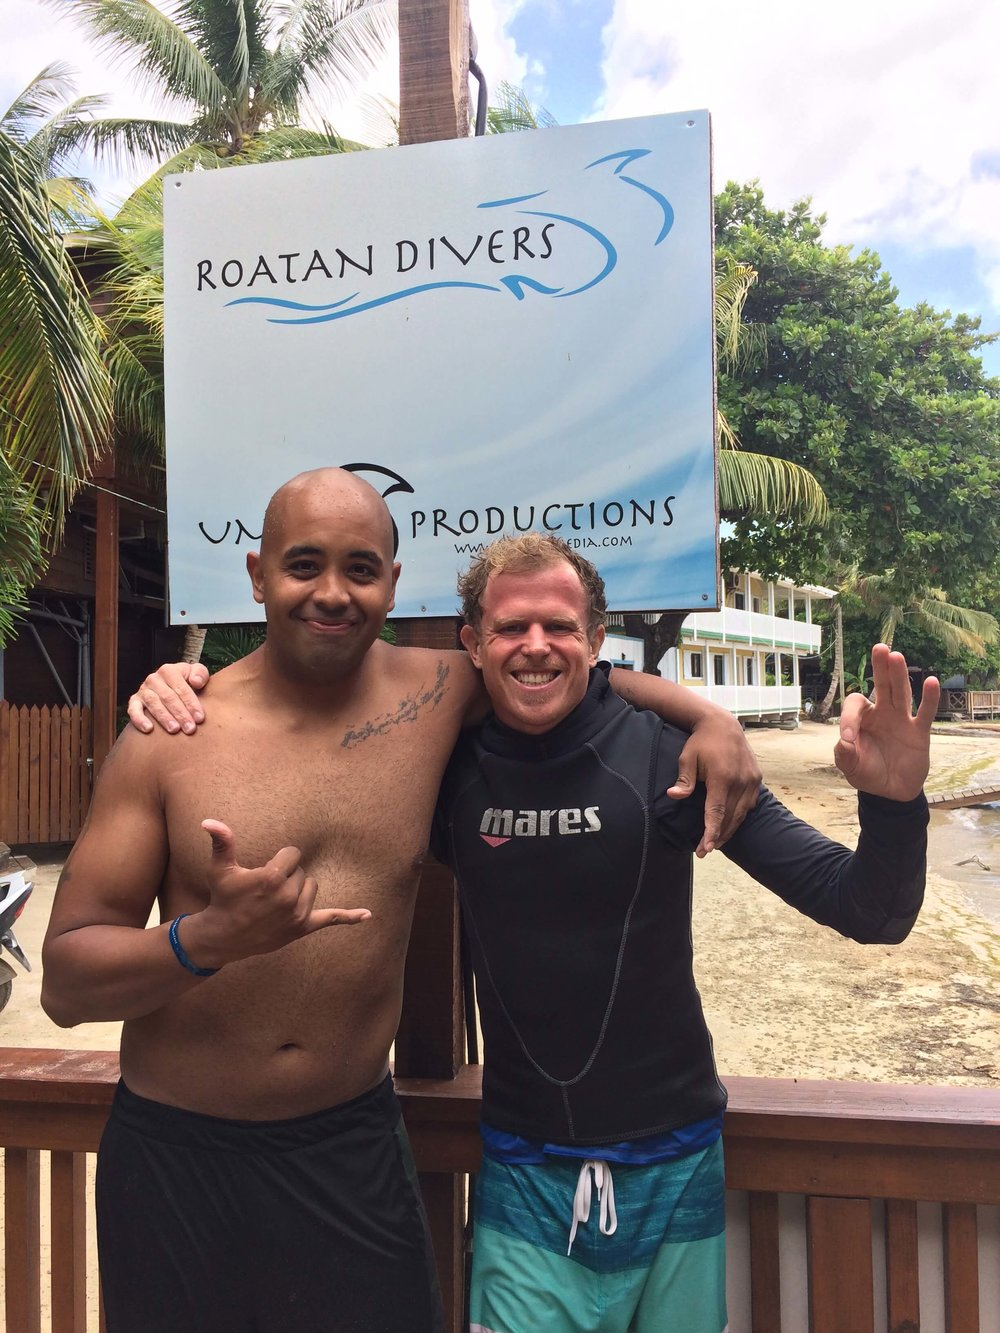 new open water diver from US to roatan